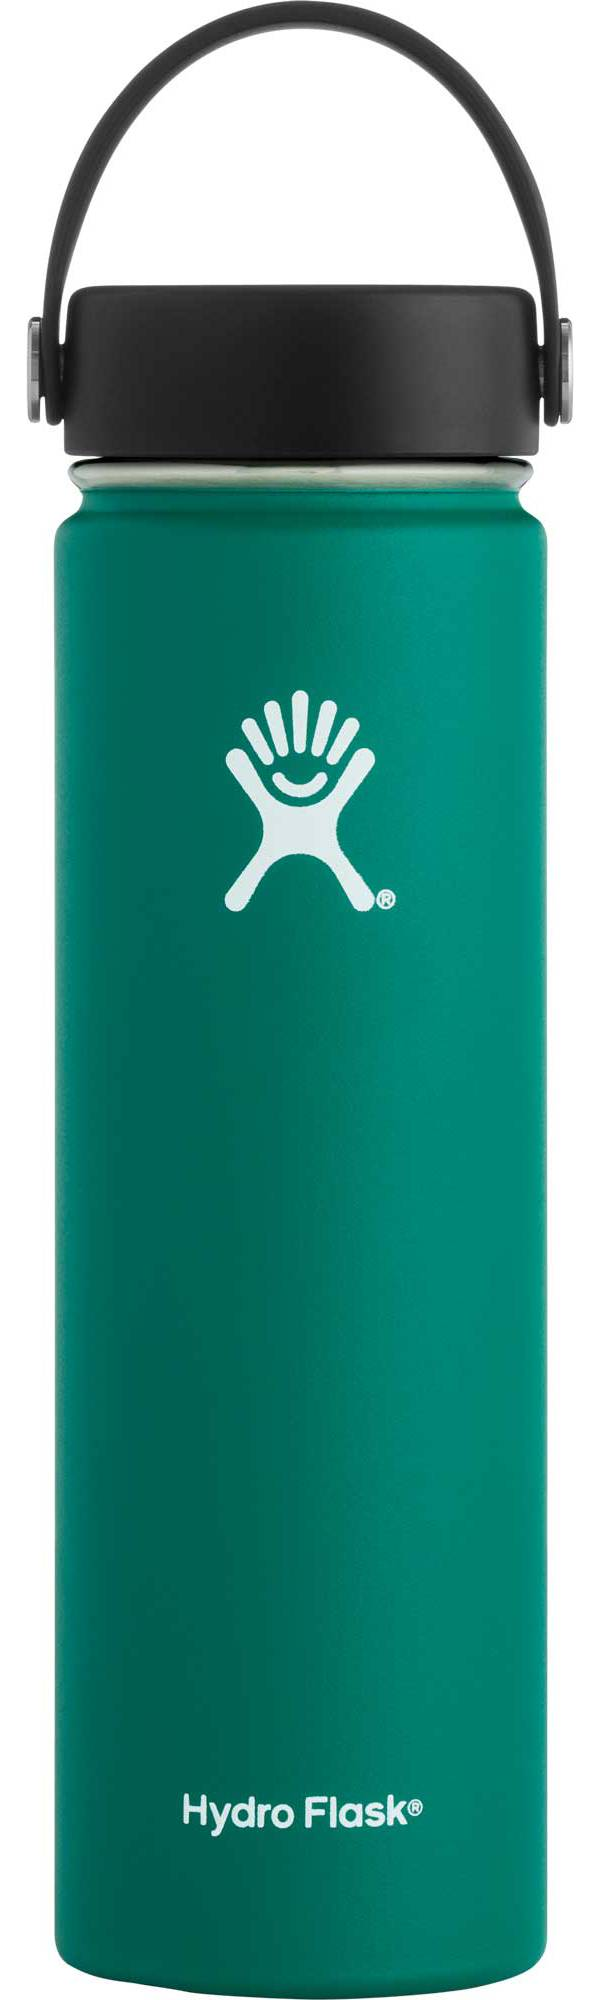 Hydro Flask Sports Matter 24 oz. Wide Mouth Bottle product image